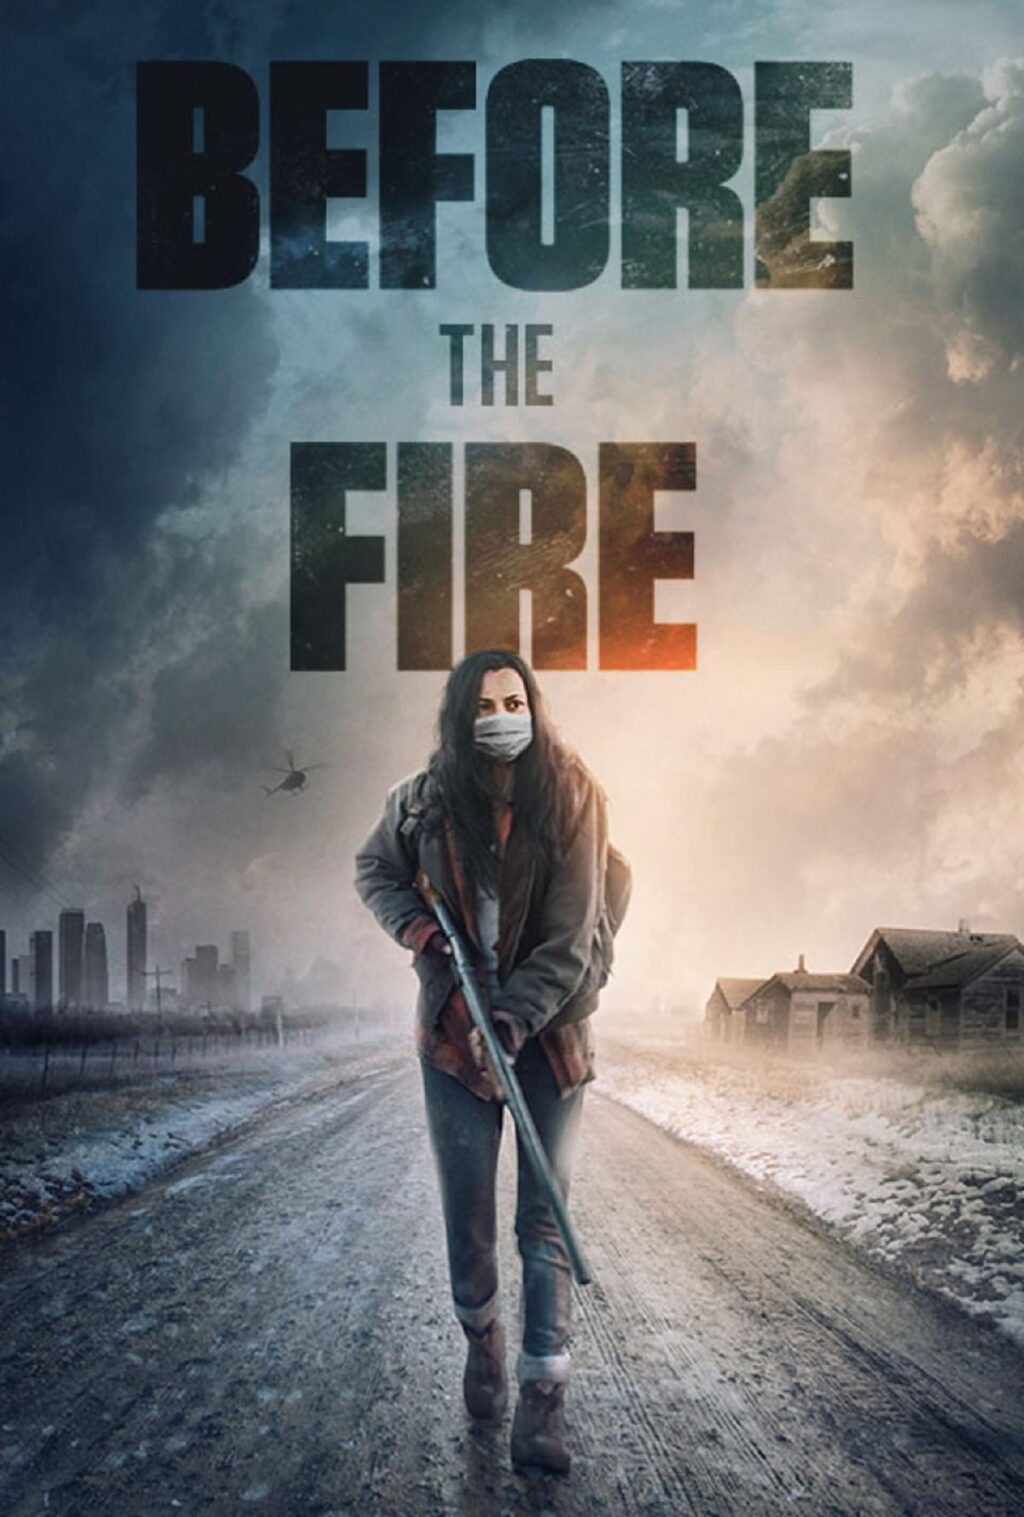 BTF Poster art 300 dpi 1024x1517 - Trailer, Poster & Release Date for Pandemic Horror BEFORE THE FIRE